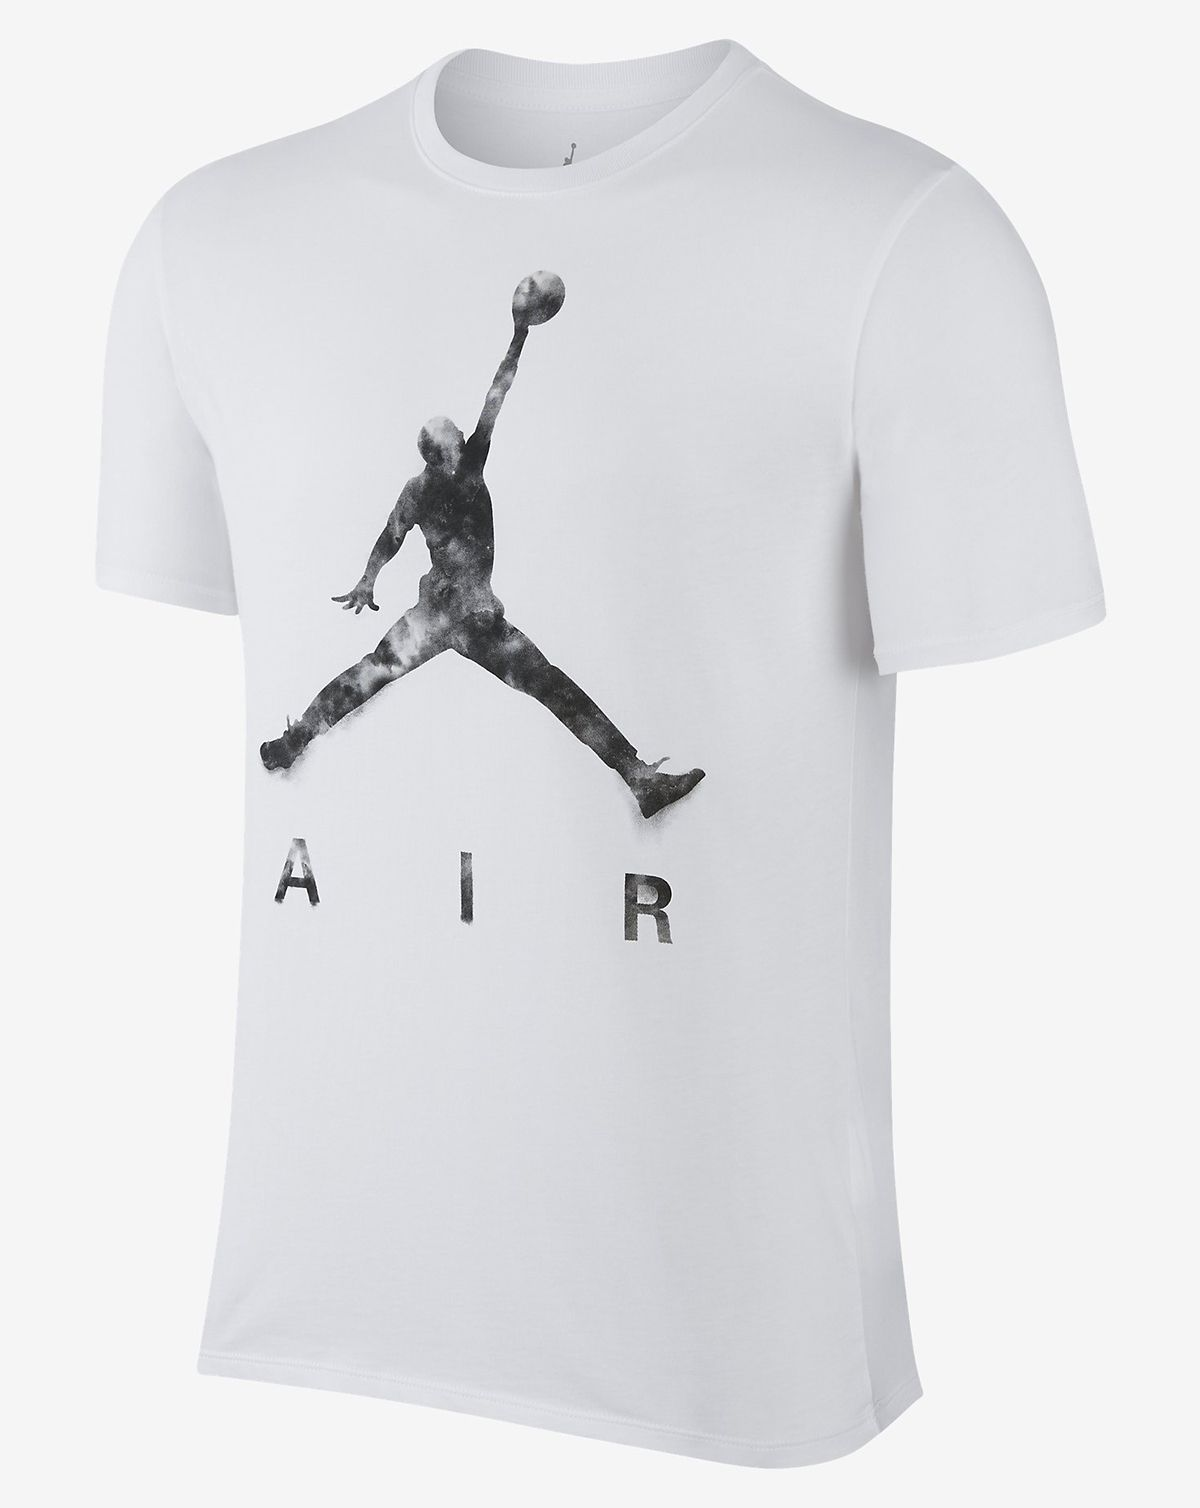 fbcdd43715d76 Jordan Jumpman Air Dreams Men s T-Shirt  White Black Nike